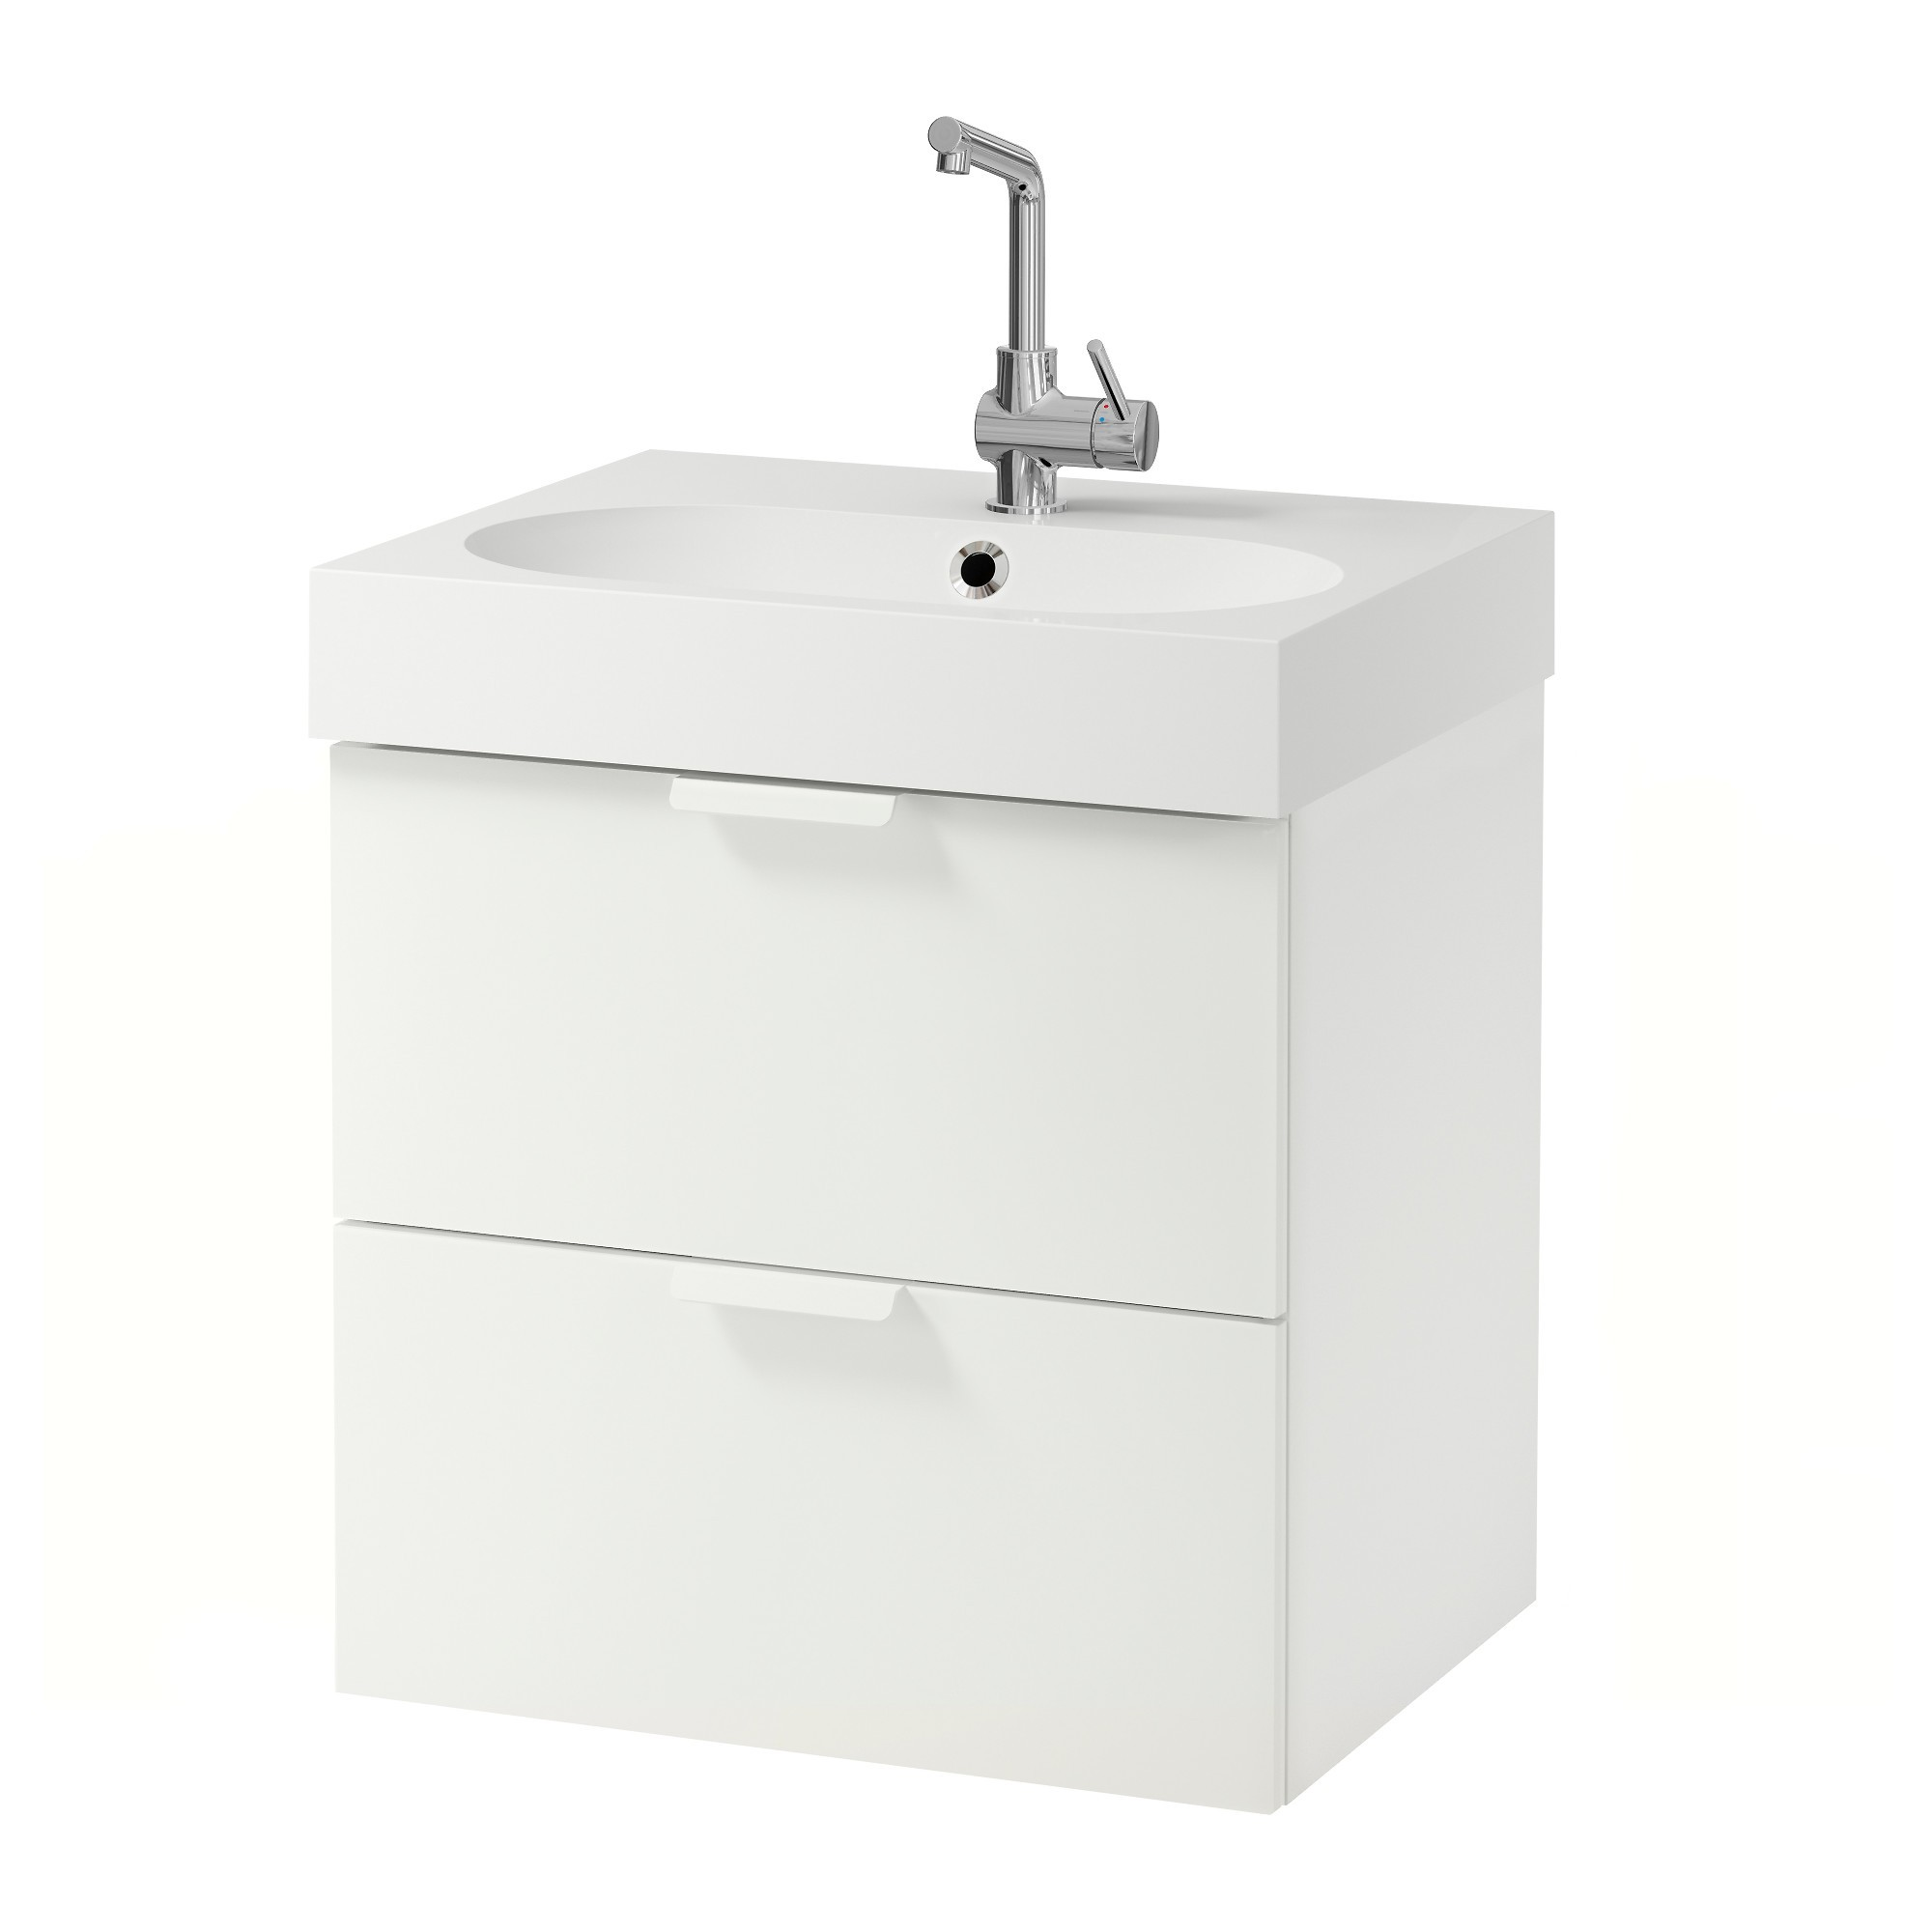 Ikea Bathroom Sink Wonderful Godmorgon Br Viken Sink Cabinet with 2 Drawers White 5 Design